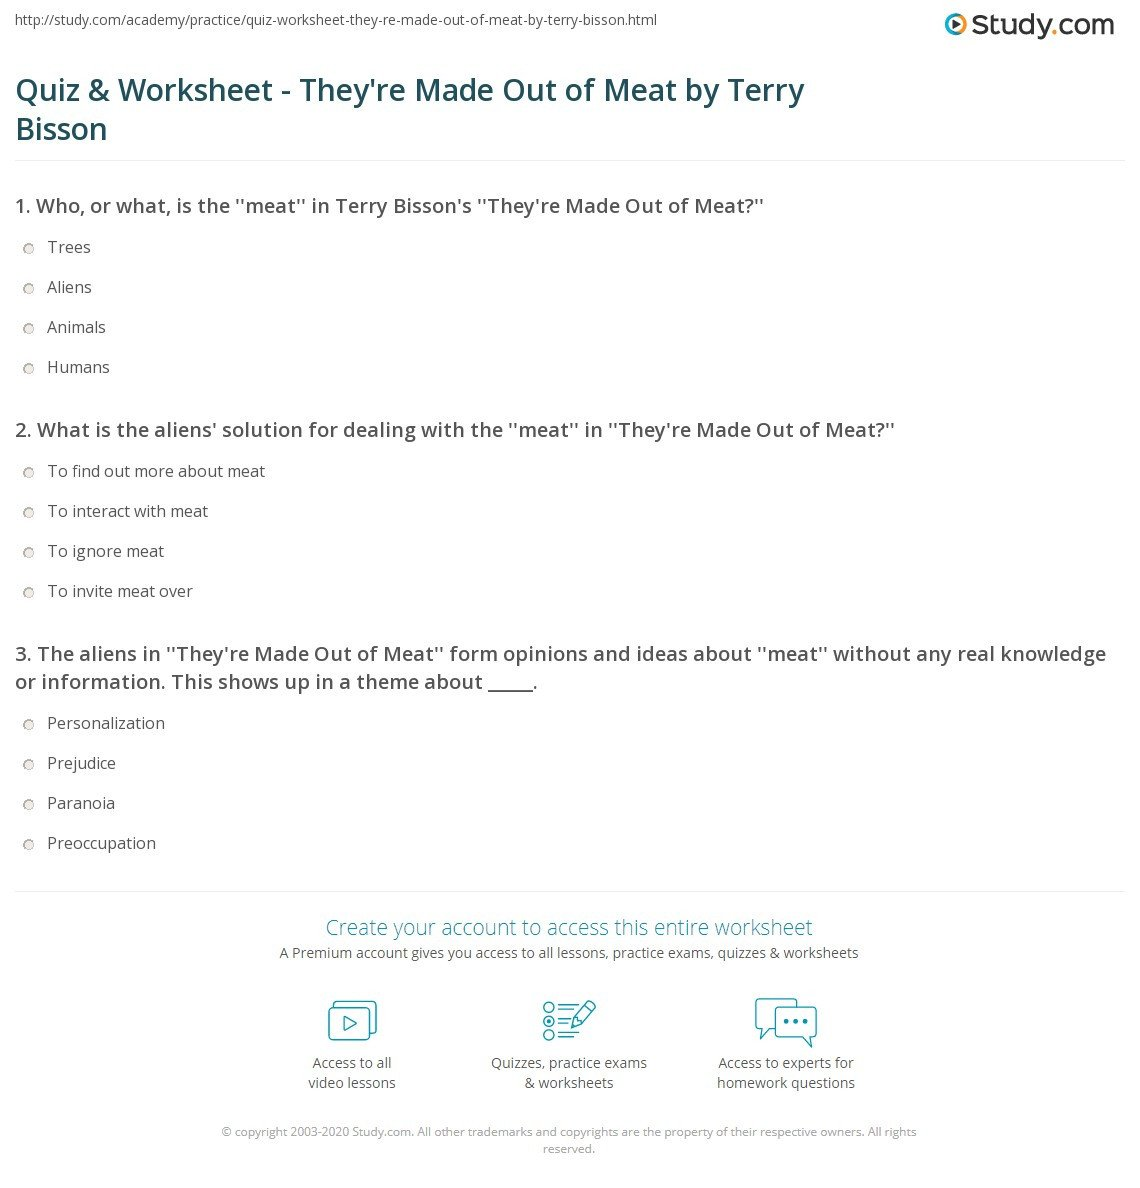 quiz worksheet they re made out of meat by terry bisson